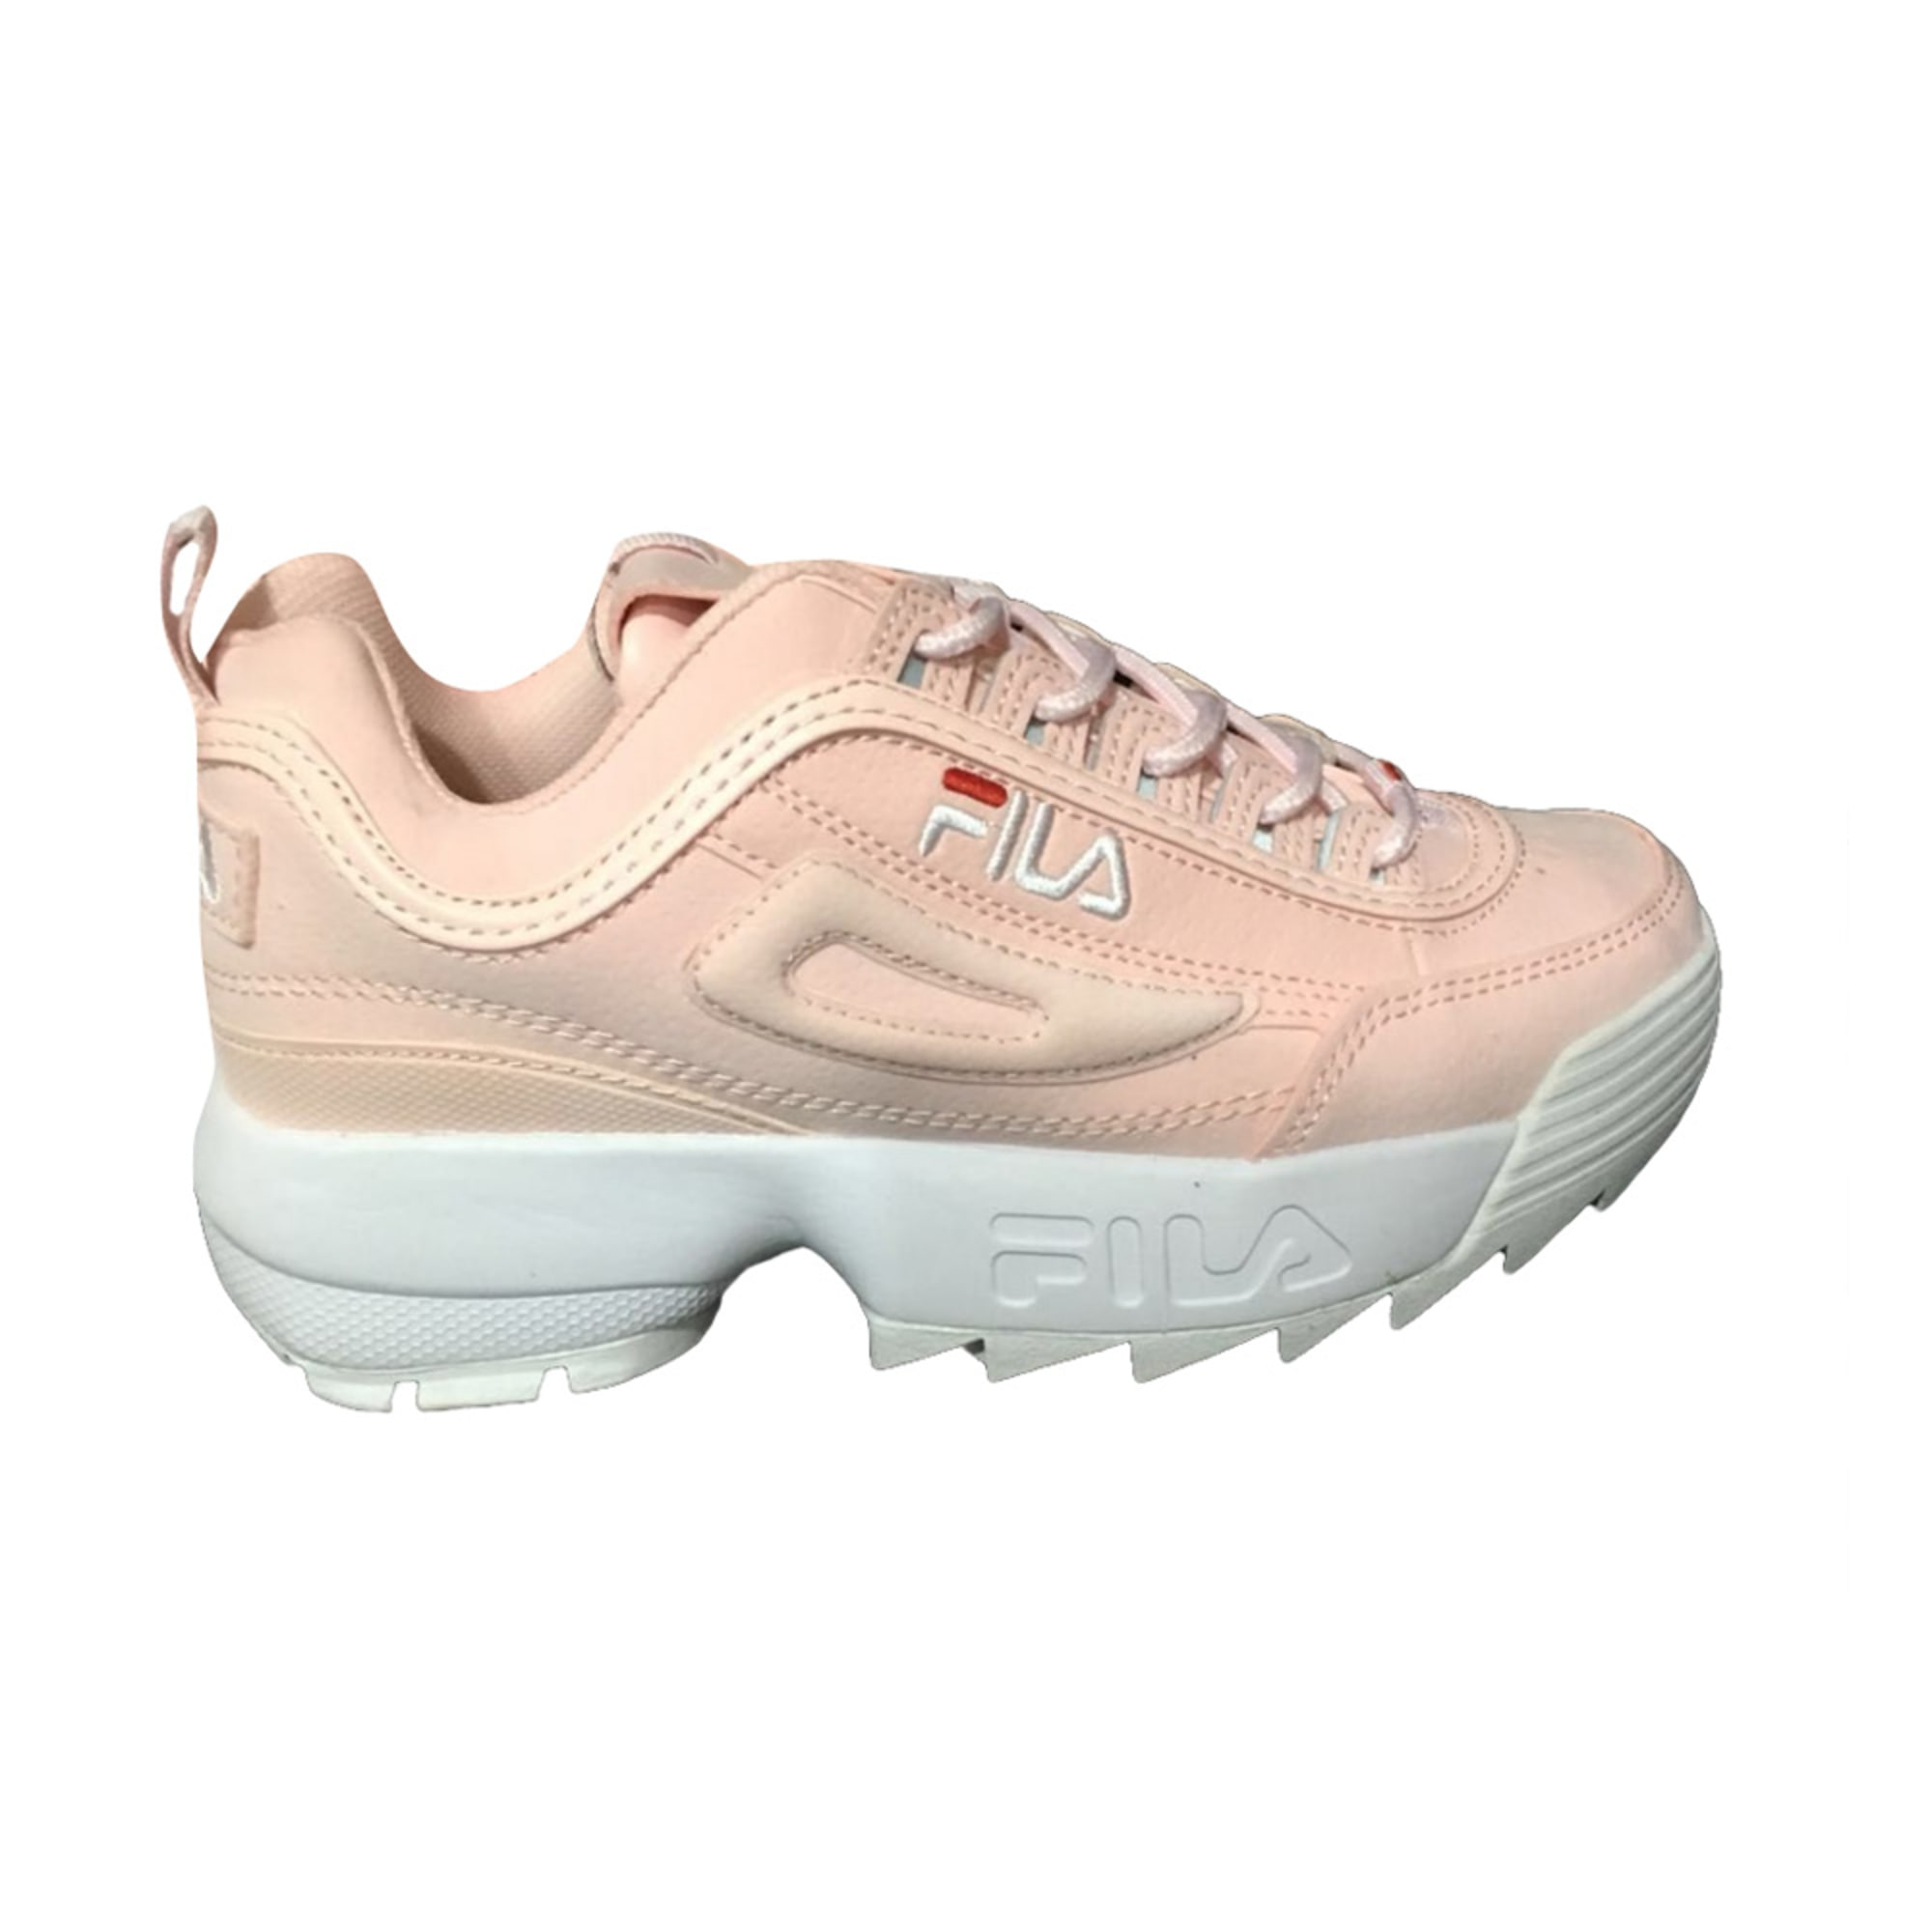 Des Chaussures Chaussures Rose Fila Avec IfvYb76gy